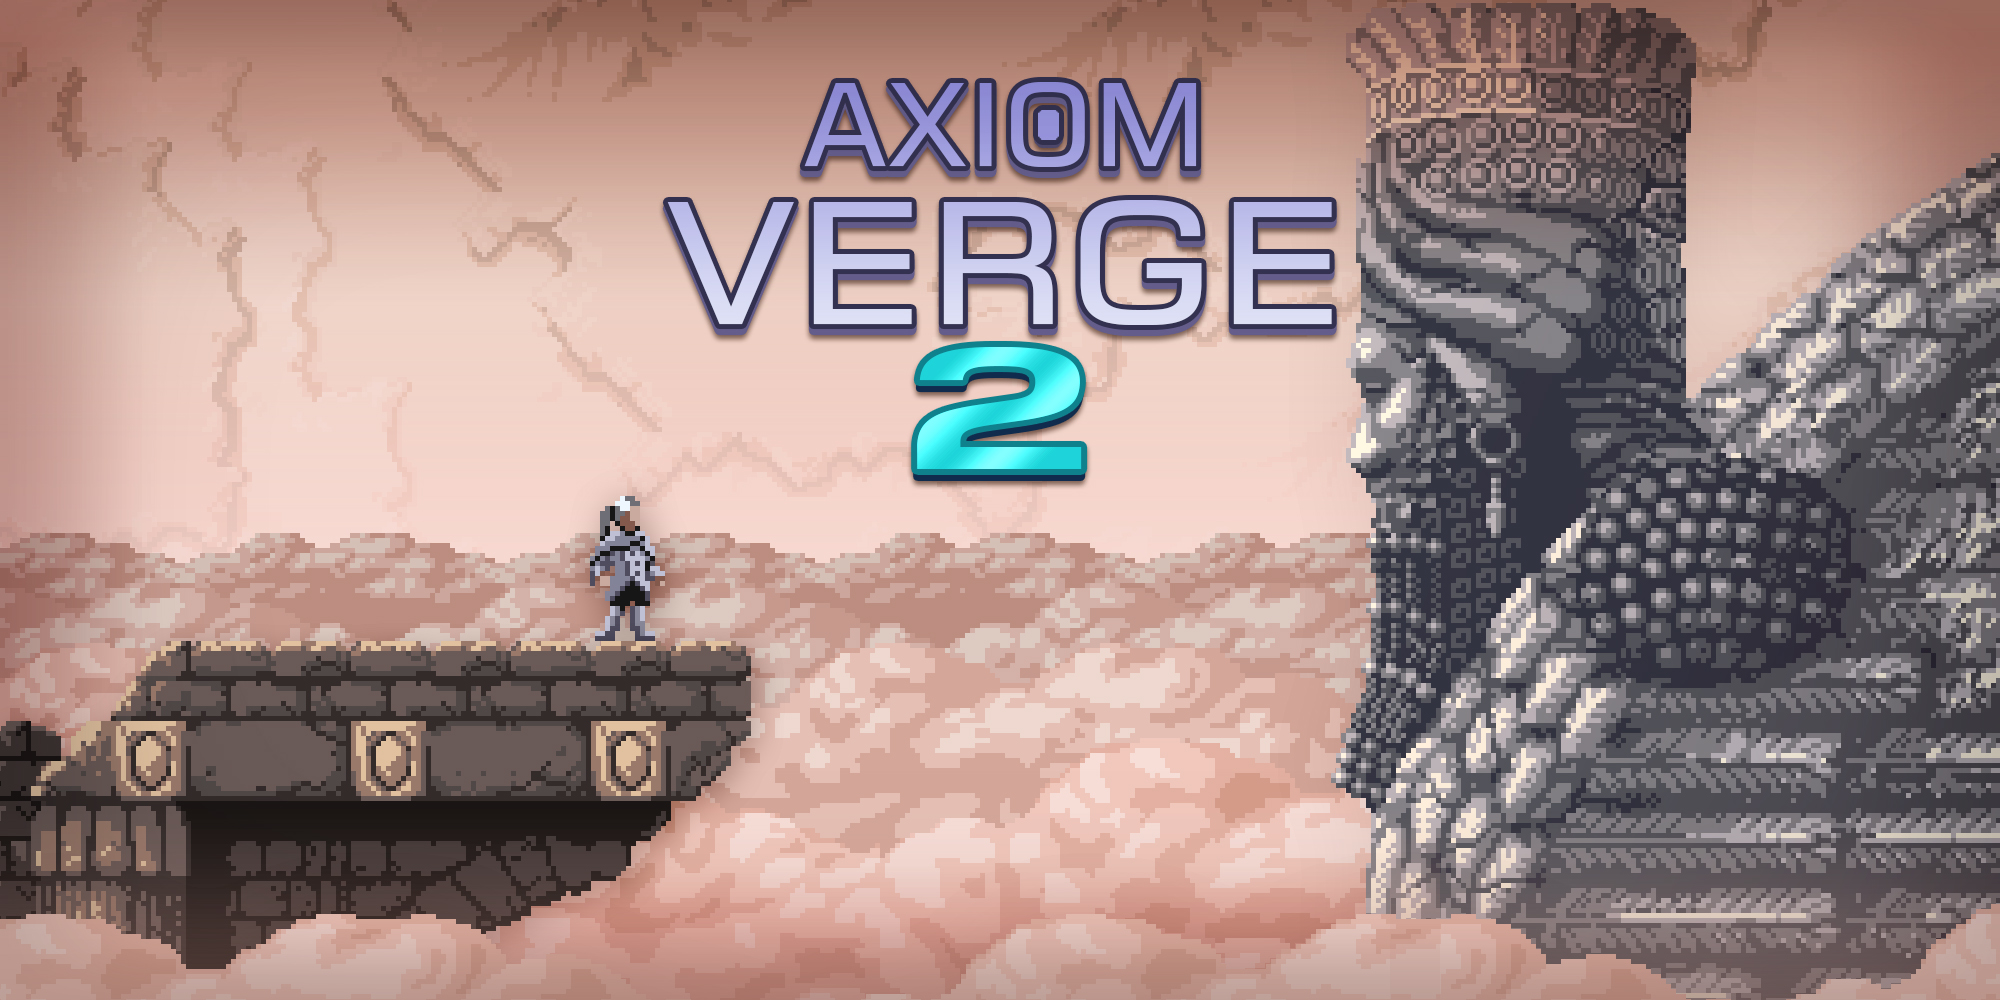 Launch of Axiom Verge 2: These are the international tests